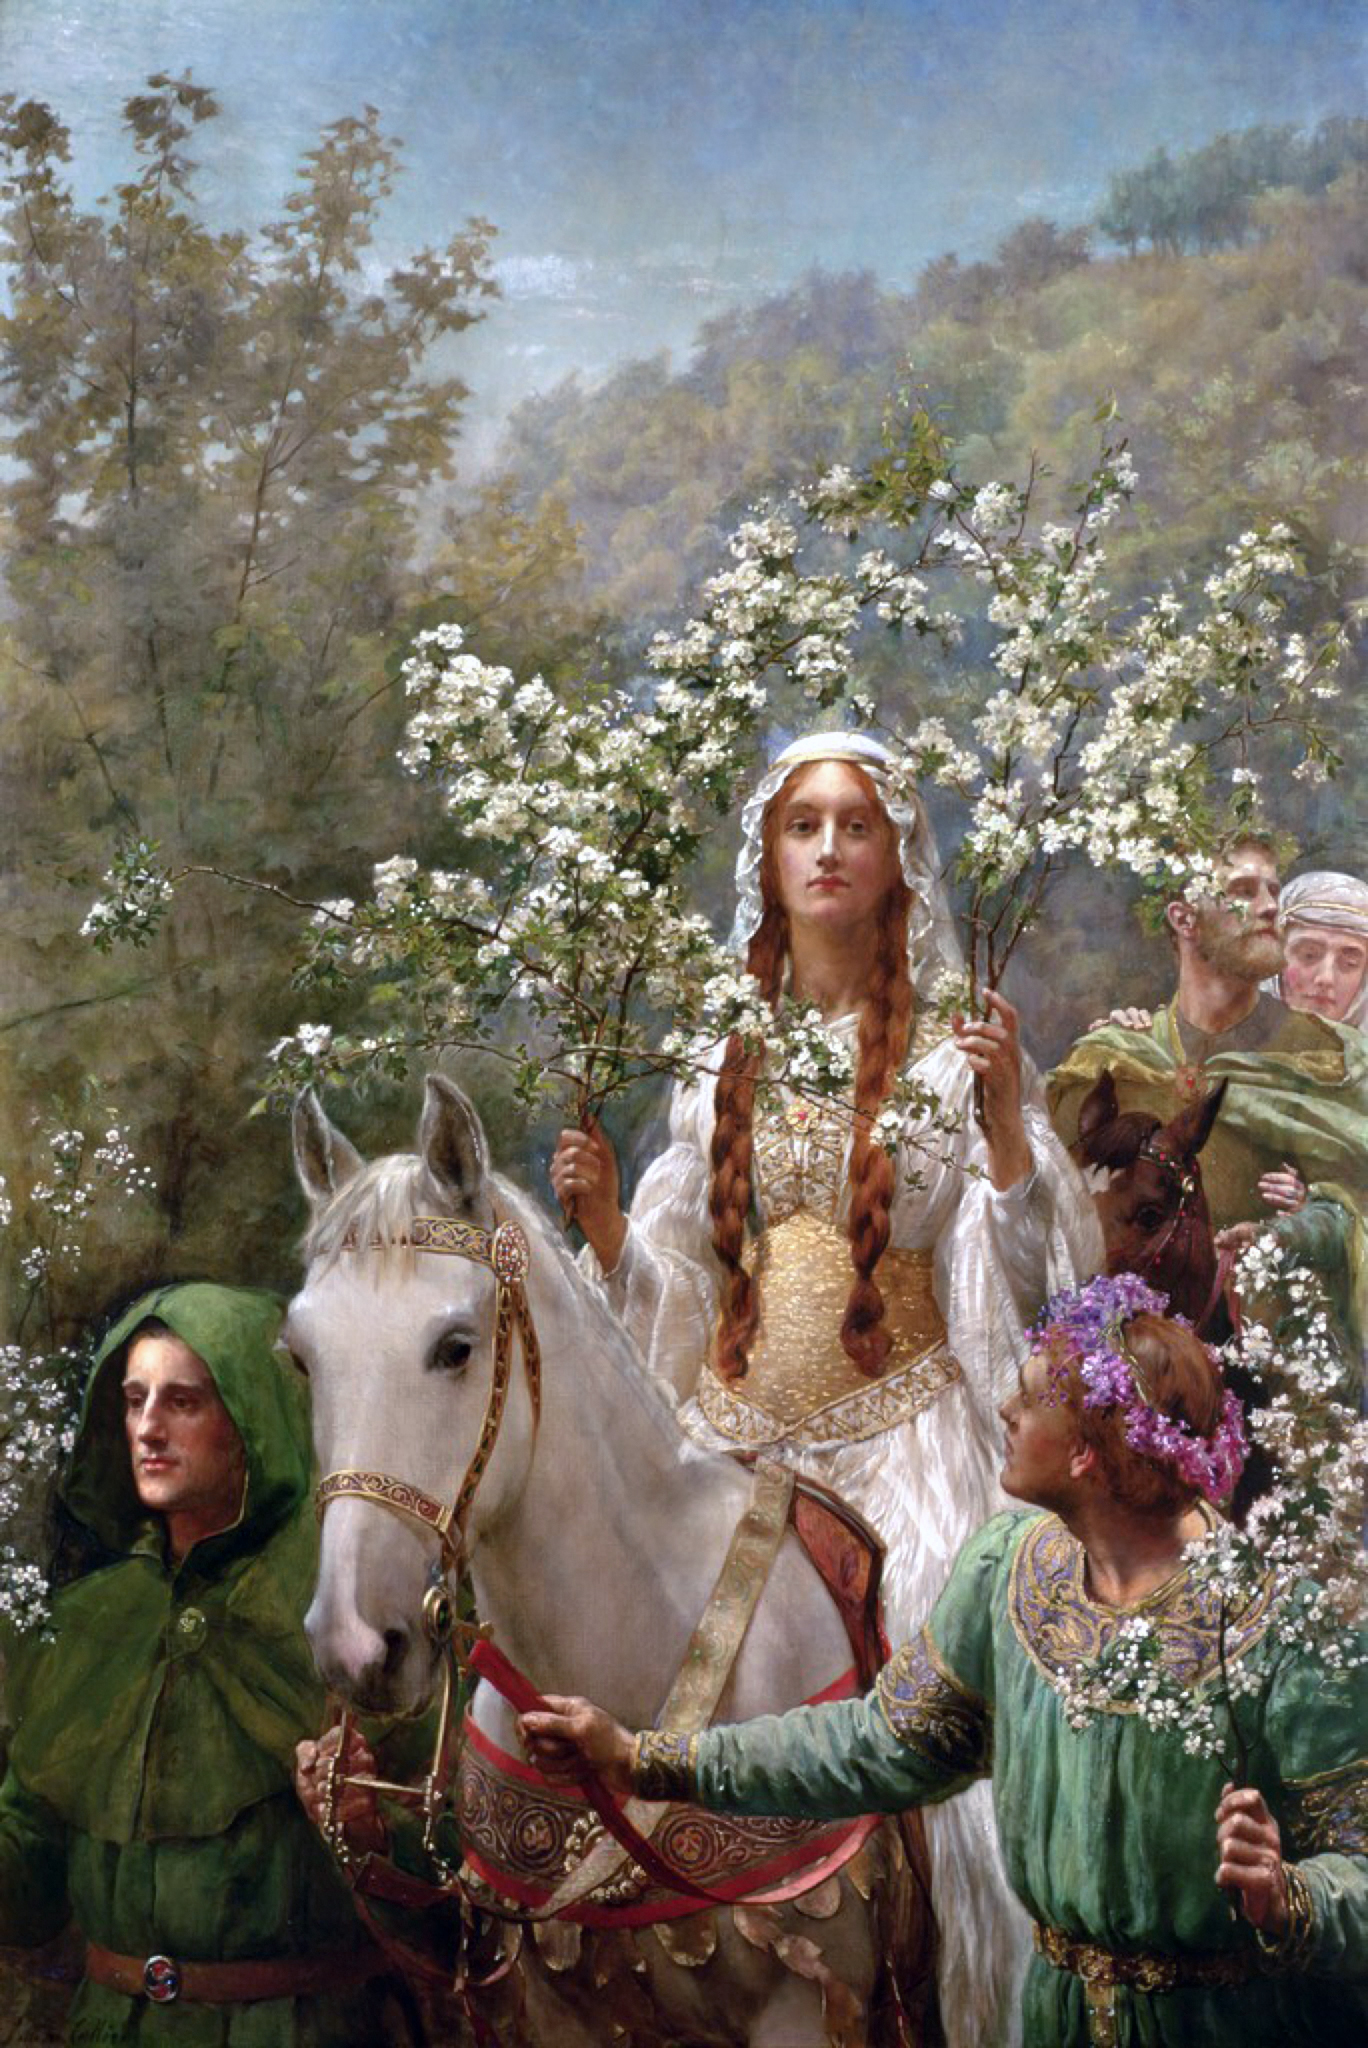 https://i0.wp.com/upload.wikimedia.org/wikipedia/commons/6/6f/John_Collier_Queen_Guinevre%27s_Maying.jpg